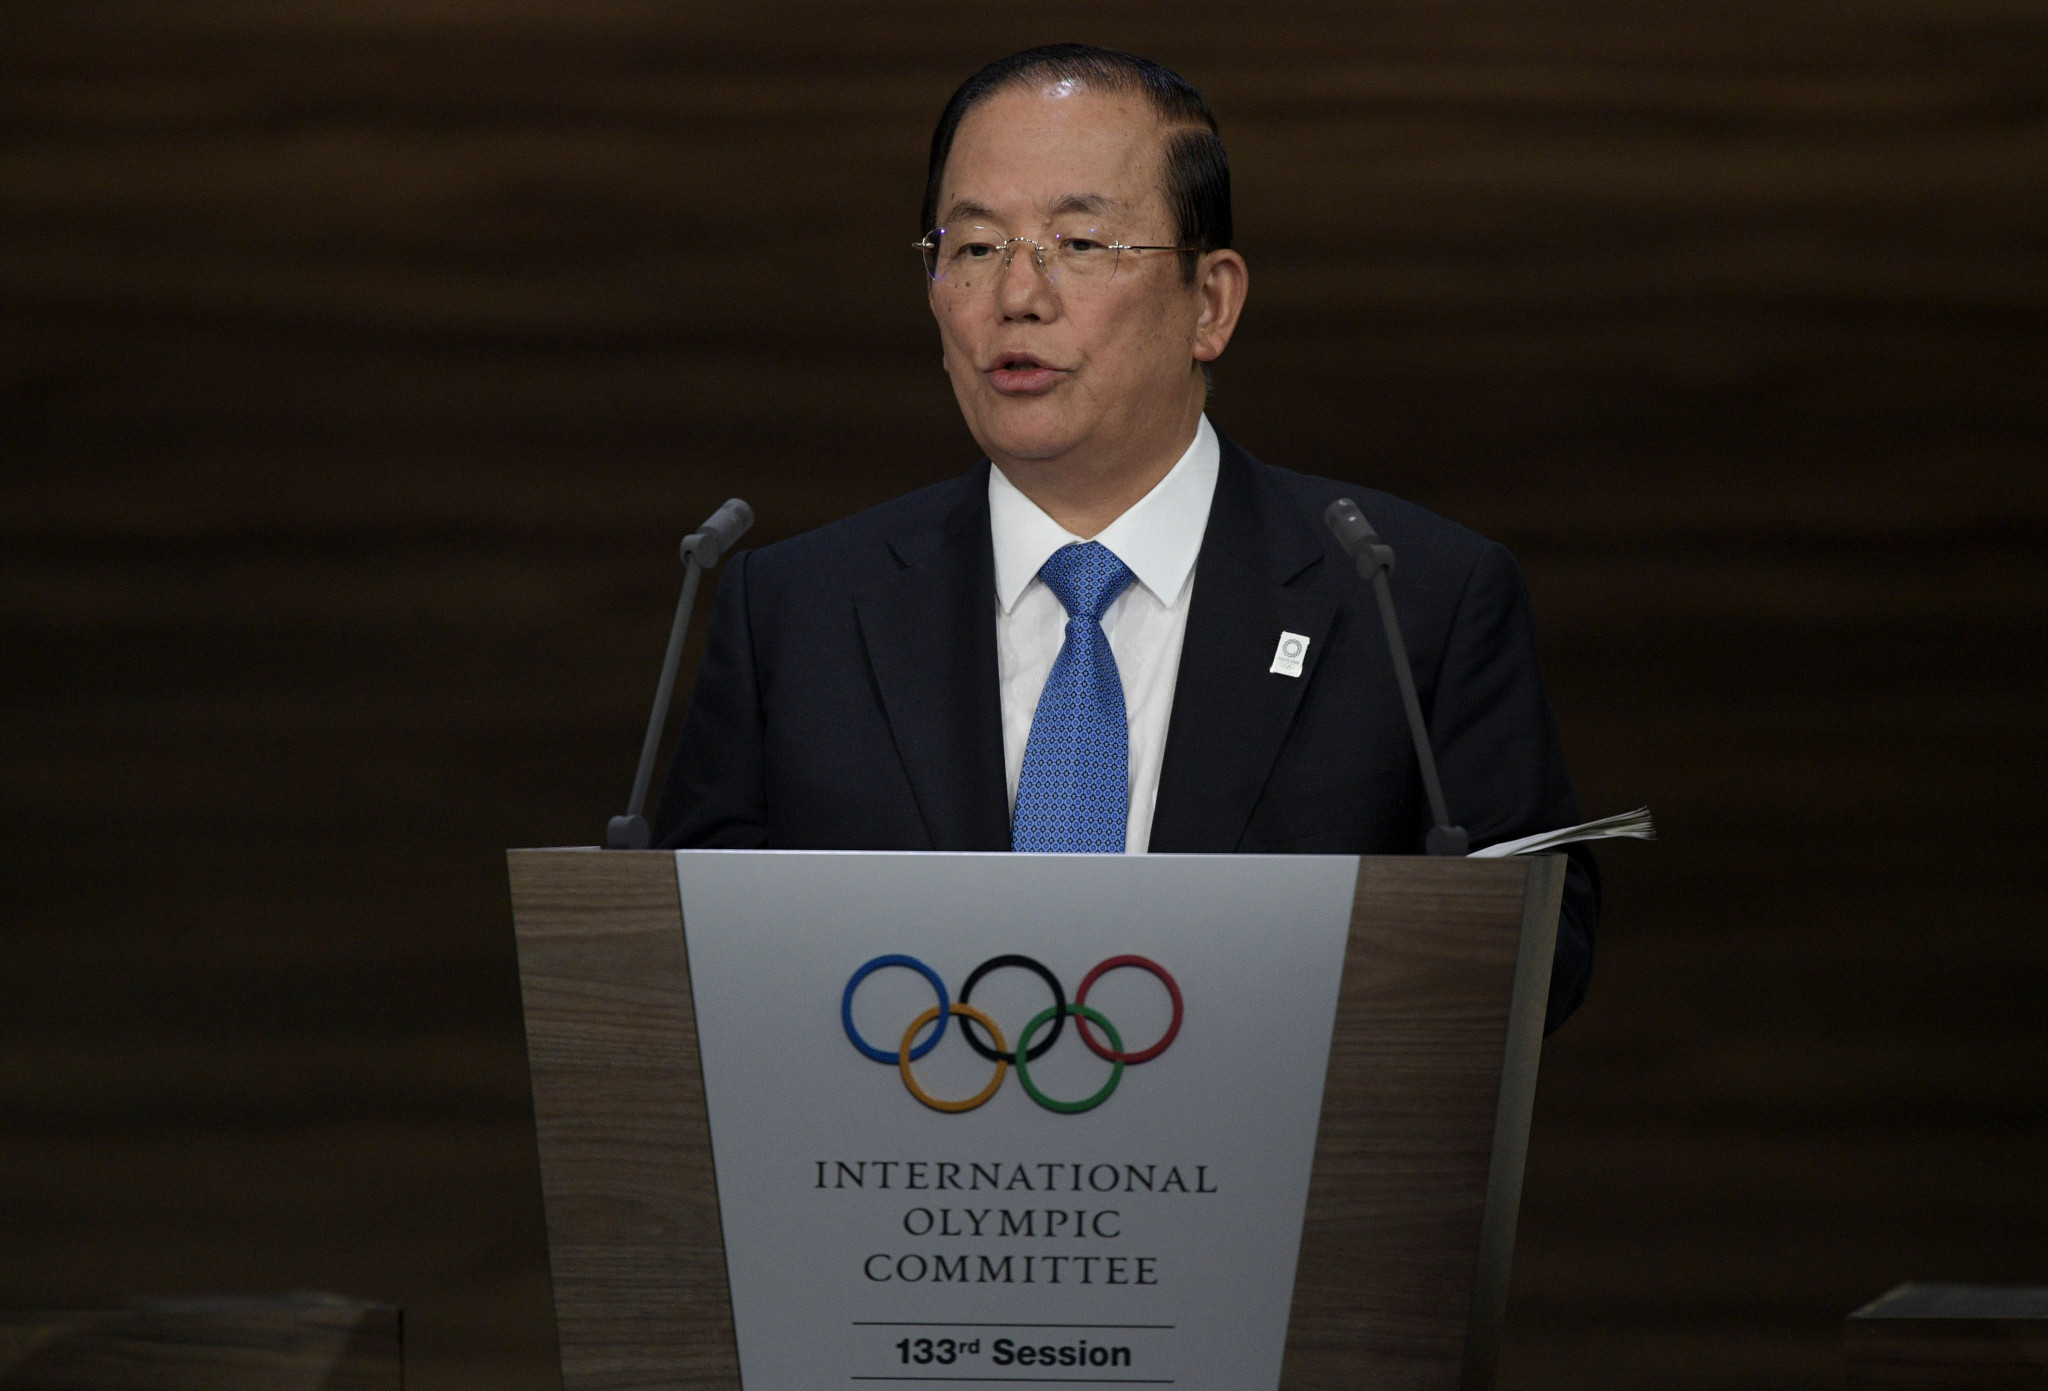 Differences between the Tokyo 2020 operating budget and costs associated with the Games have divided opinion ©Getty Images